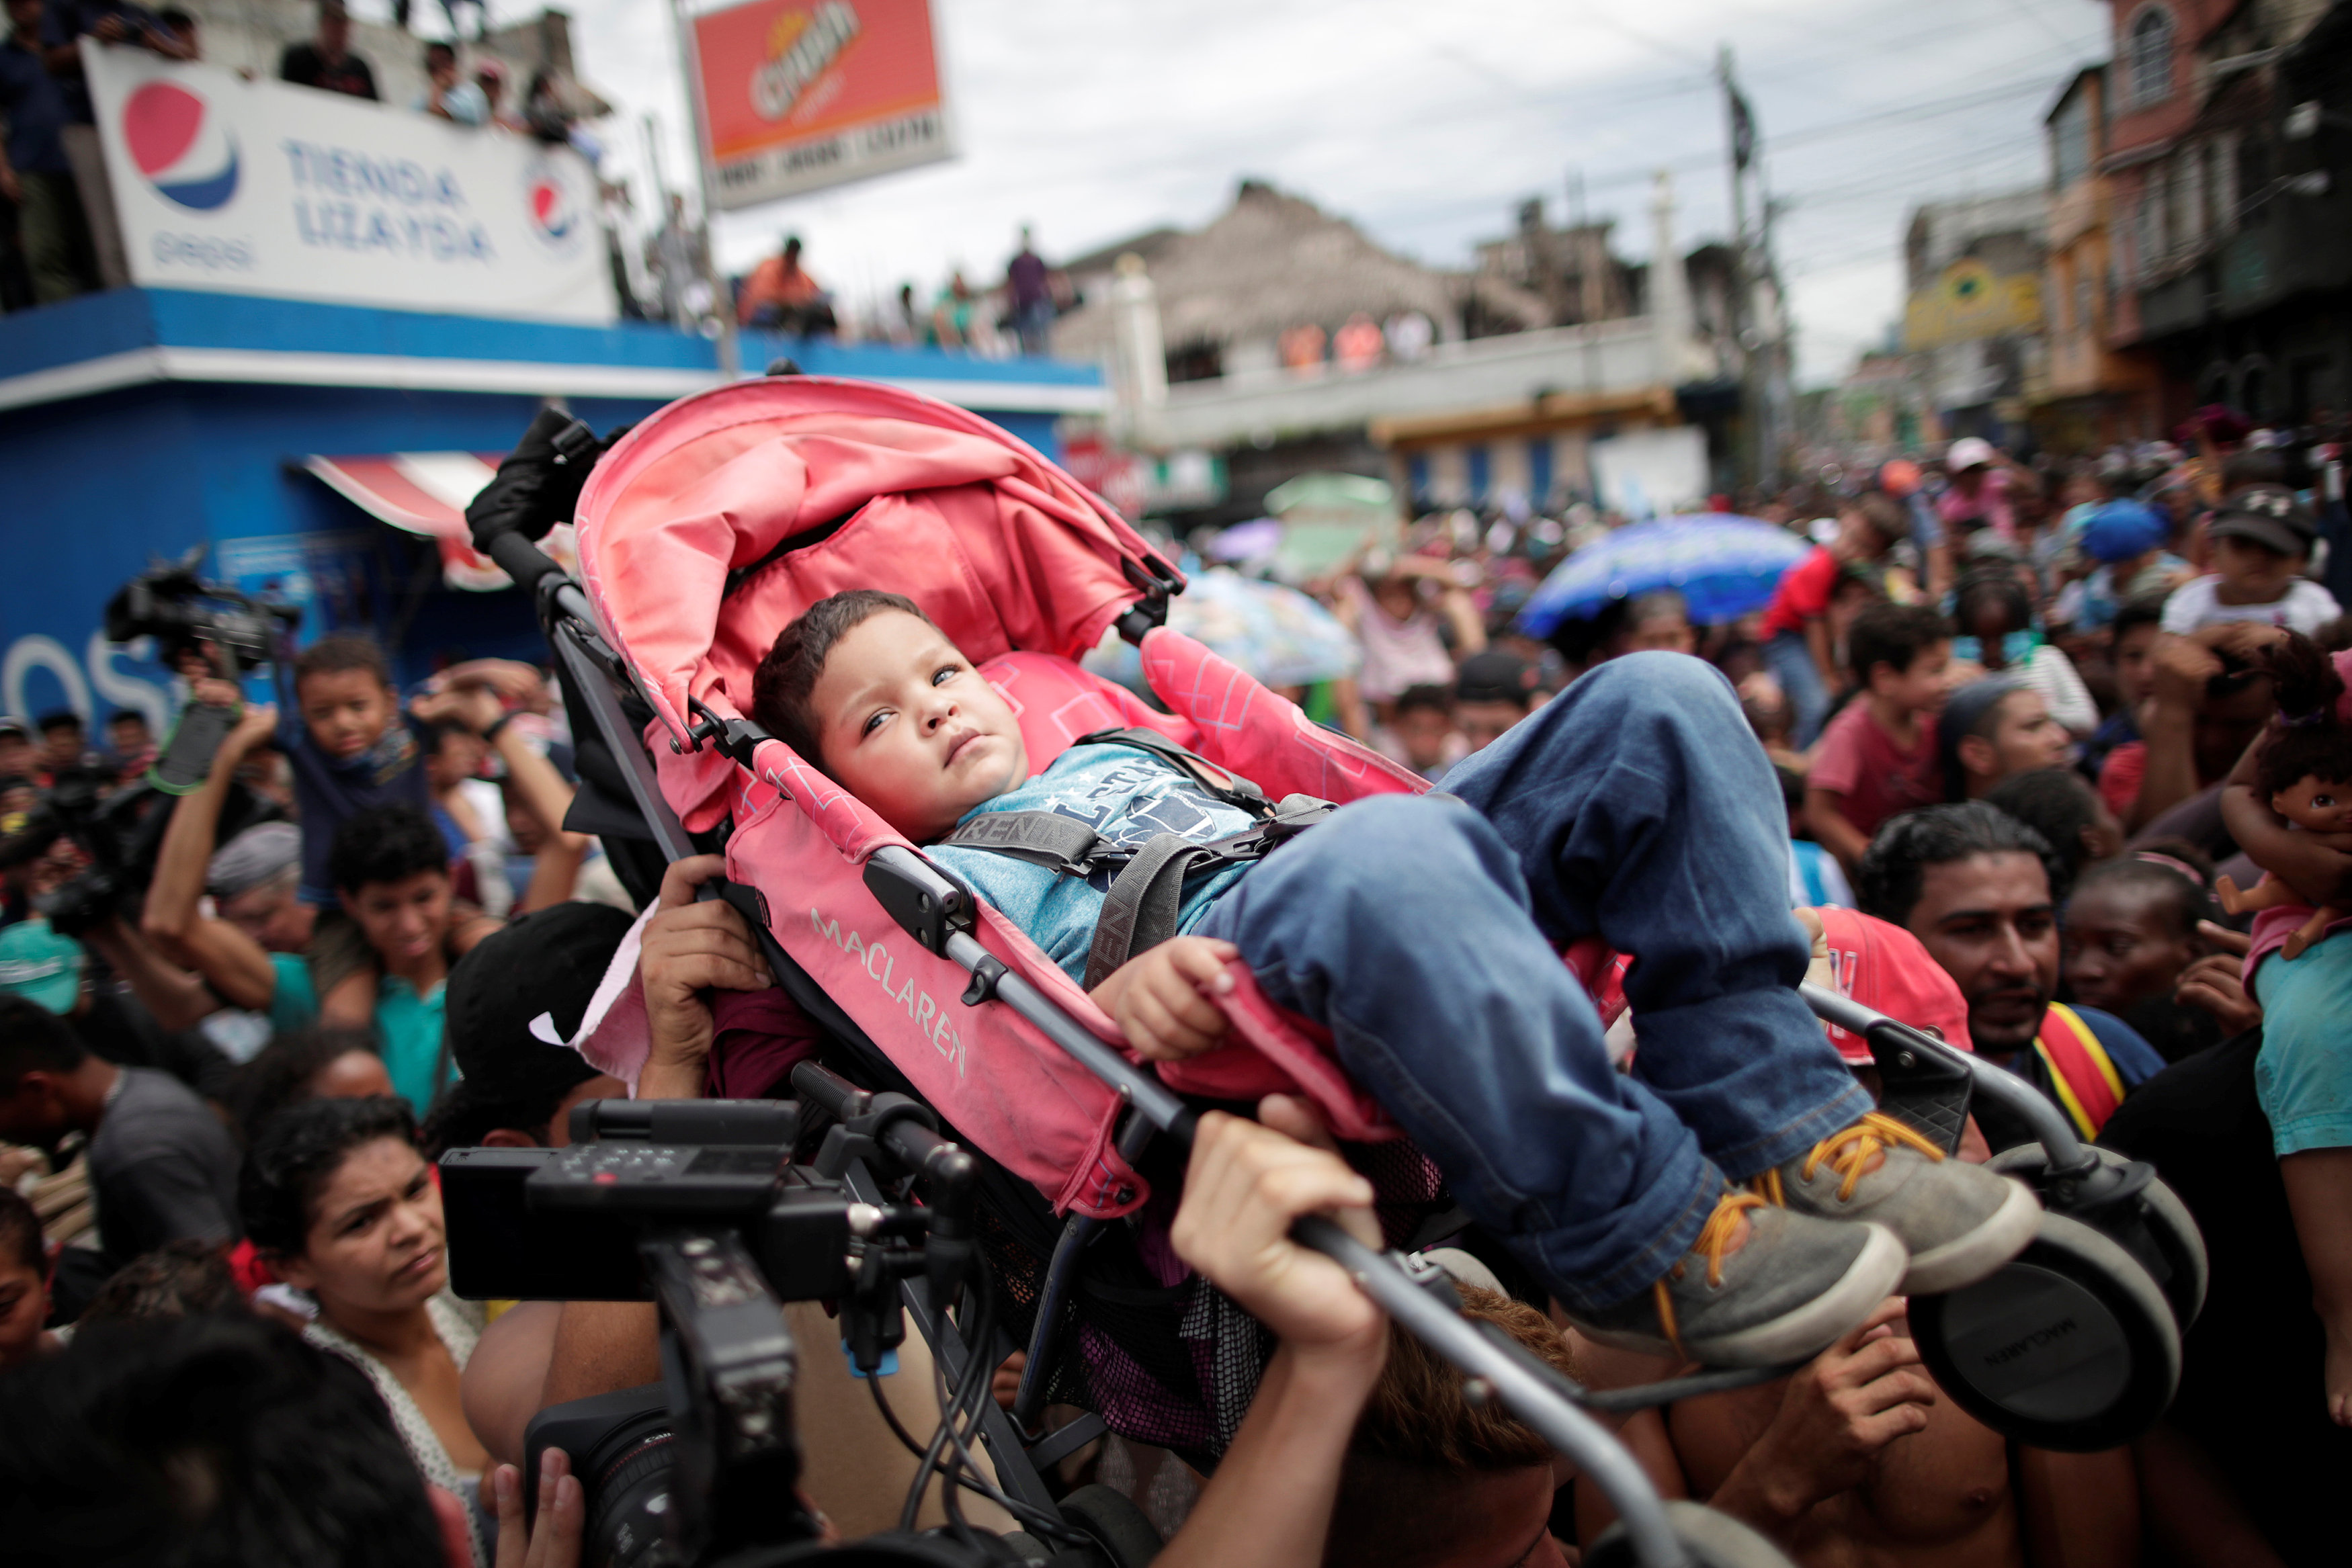 Honduran migrants, part of a caravan trying to reach the U.S., hold up a child in a stroll while, gathering at the Guatemalan border to cross into Mexico, in Tecun Uman